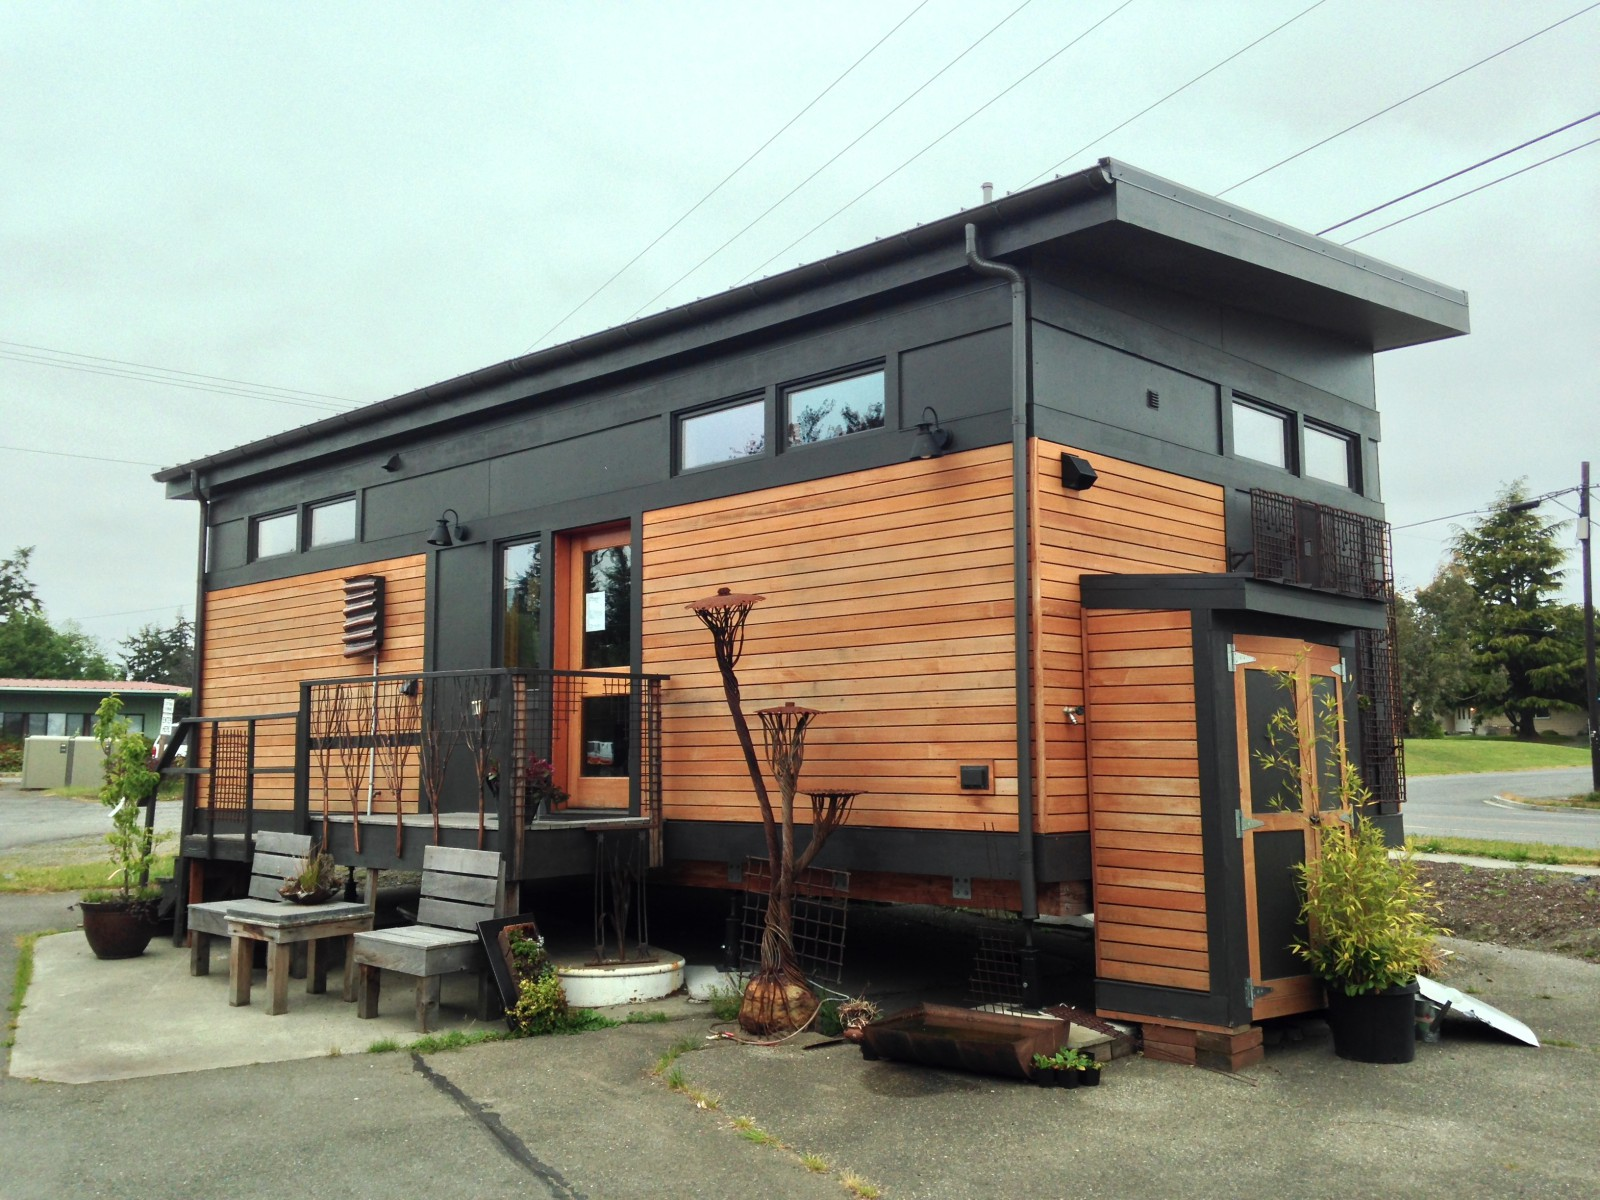 Gallery The Waterhaus a tiny sustainable prefab